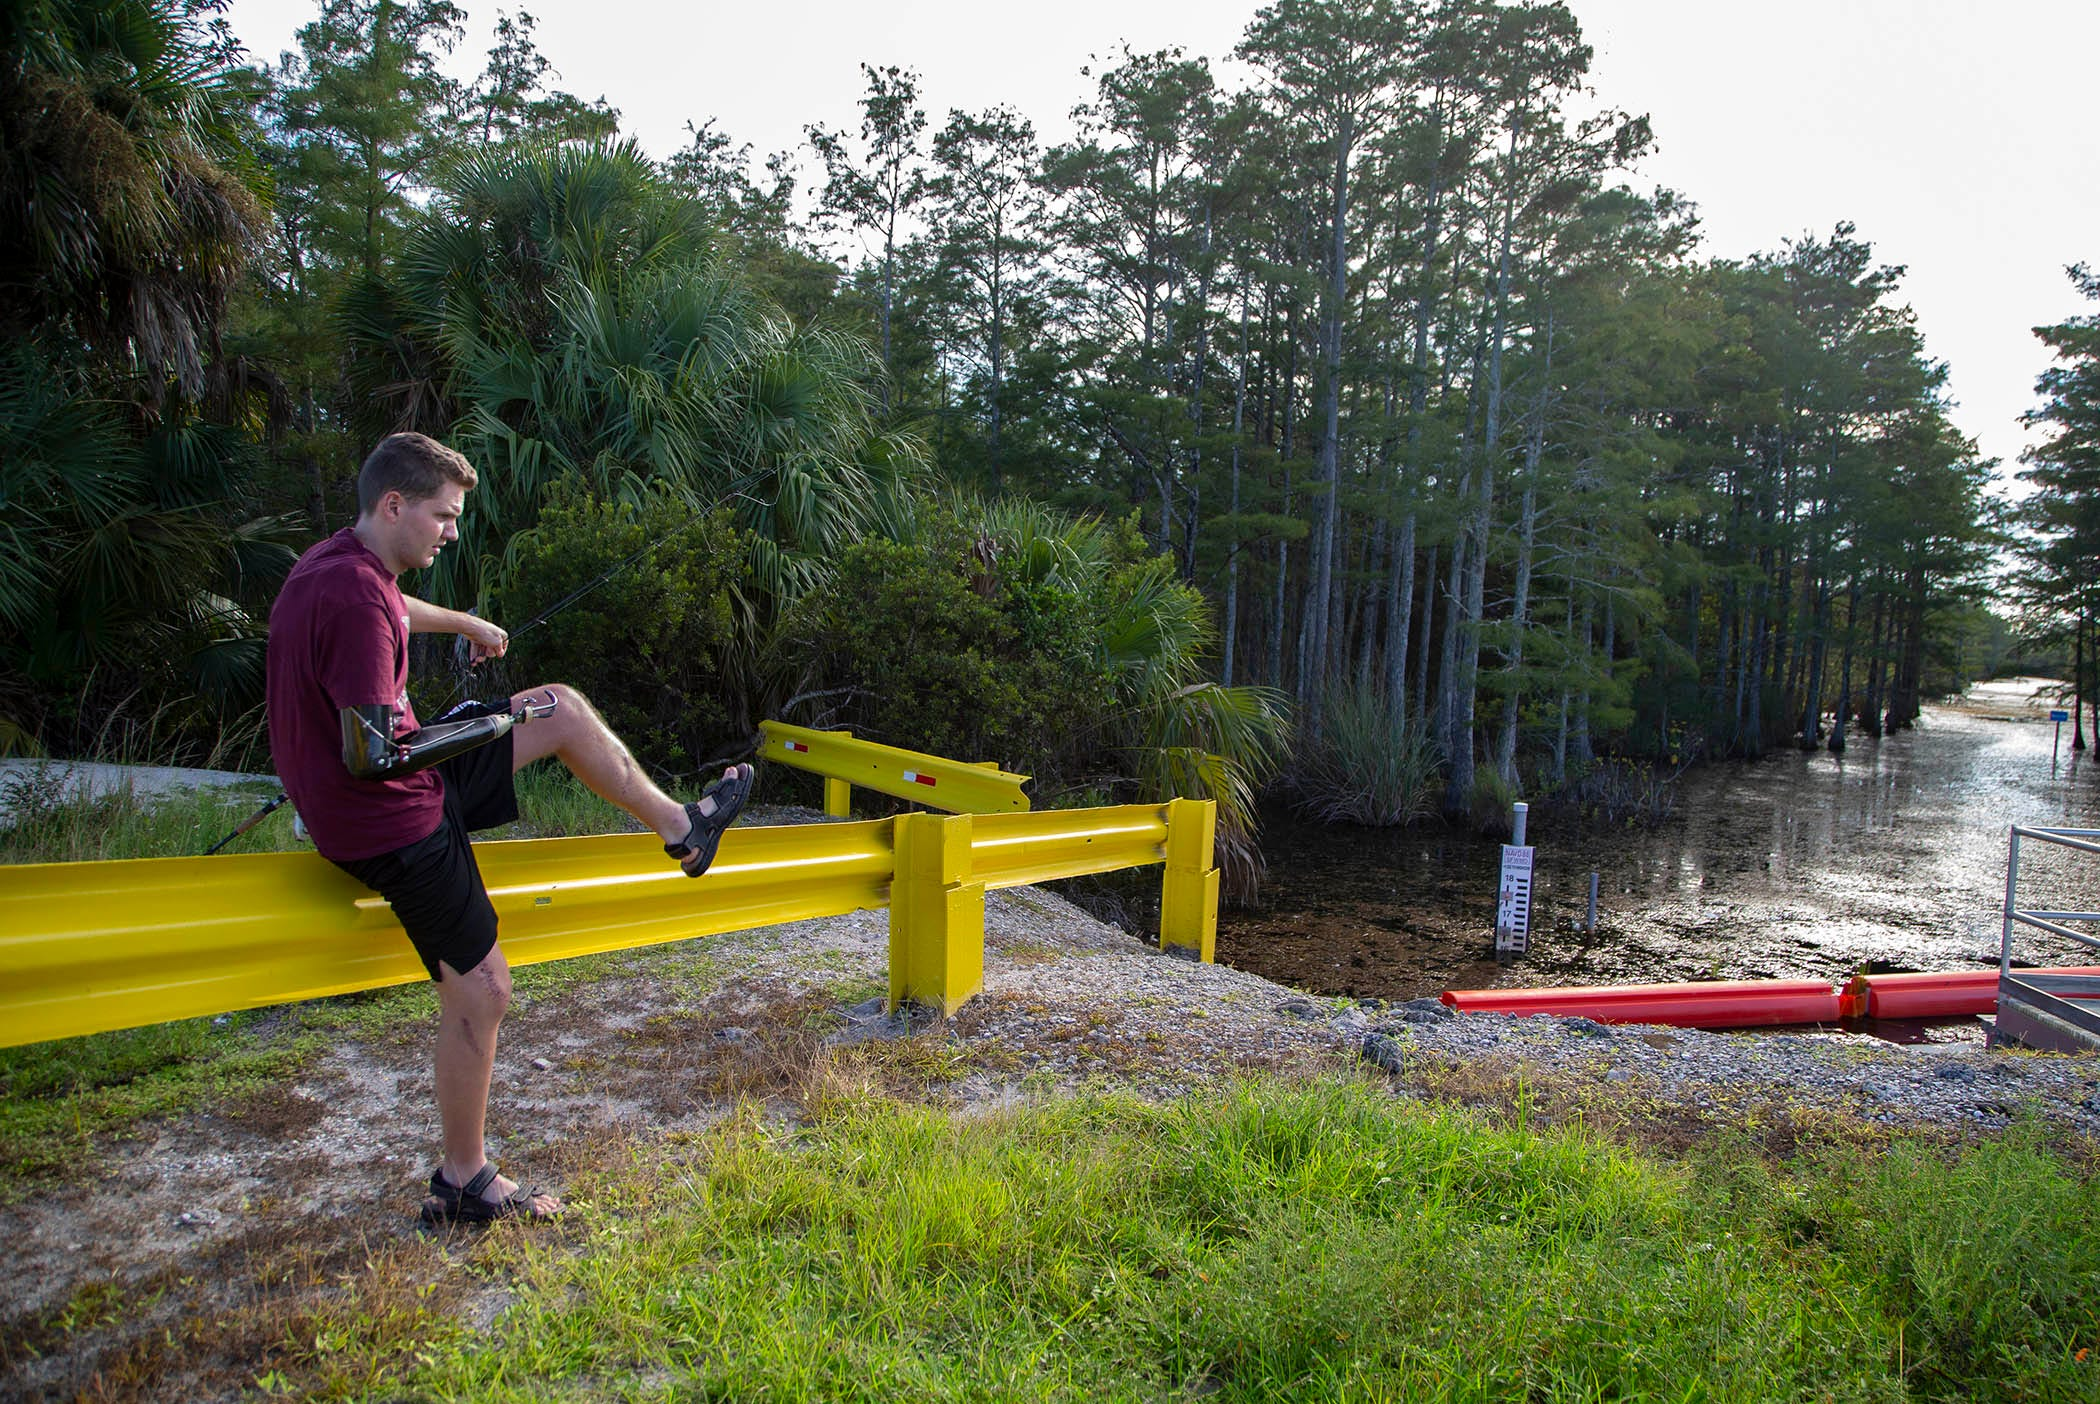 Carter Viss hops over a guardrail on Aug. 7 while fishing at Sandhill Crane Access Park in Palm Beach Gardens.